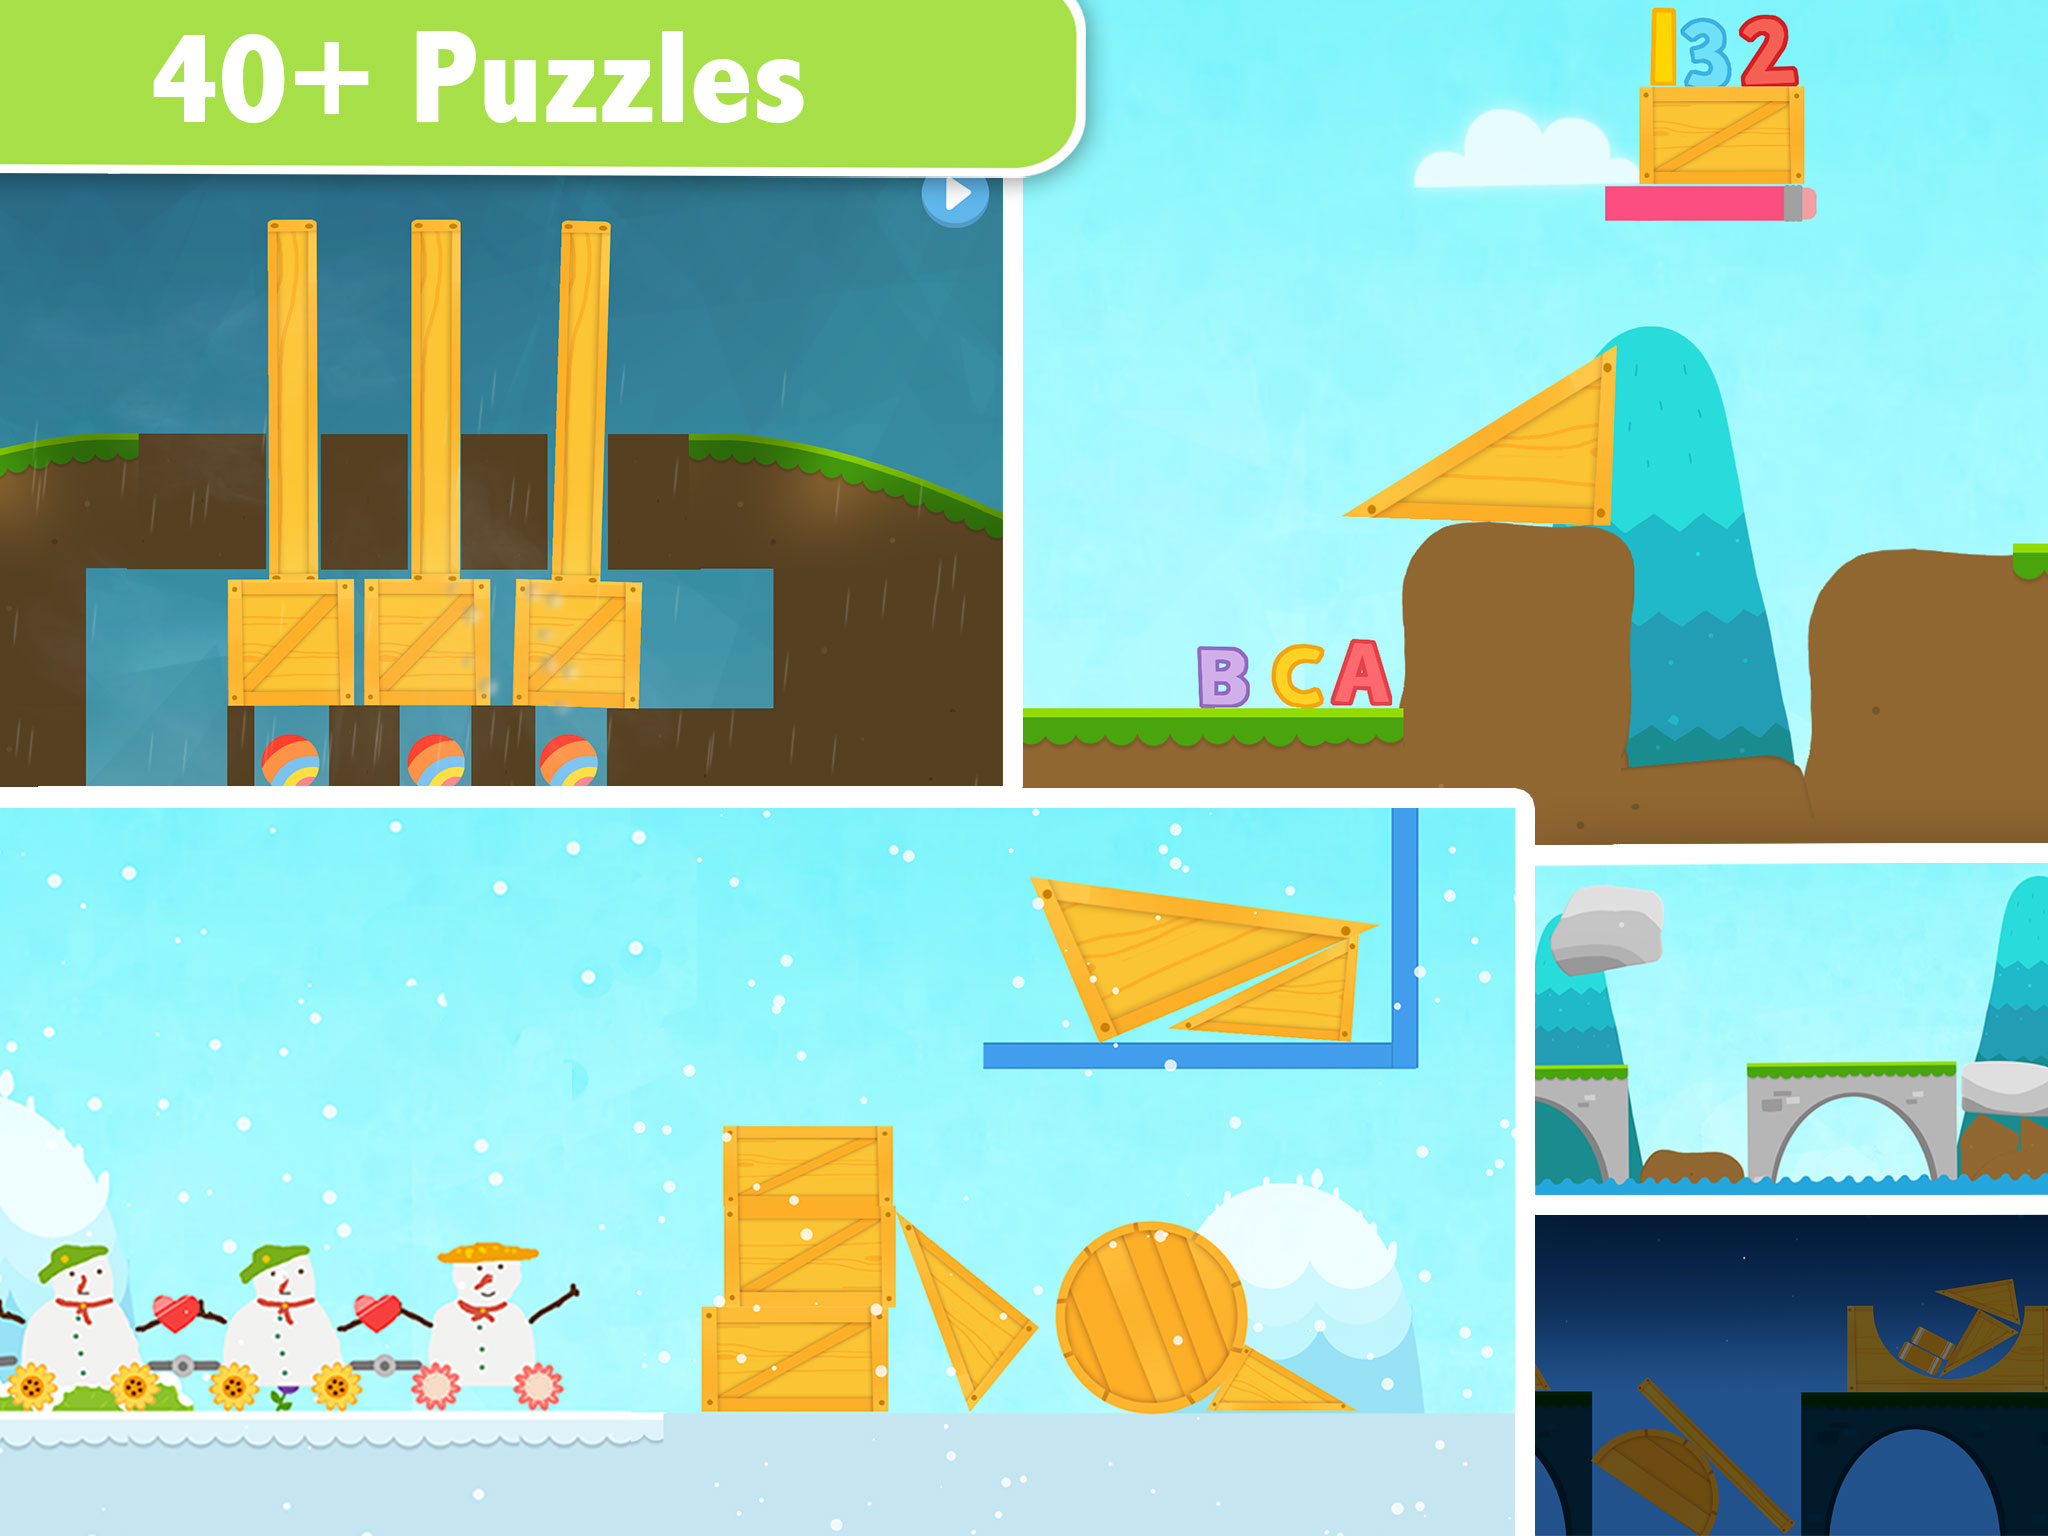 Labo Train - A creative draw & play road construction game for kids 3-7